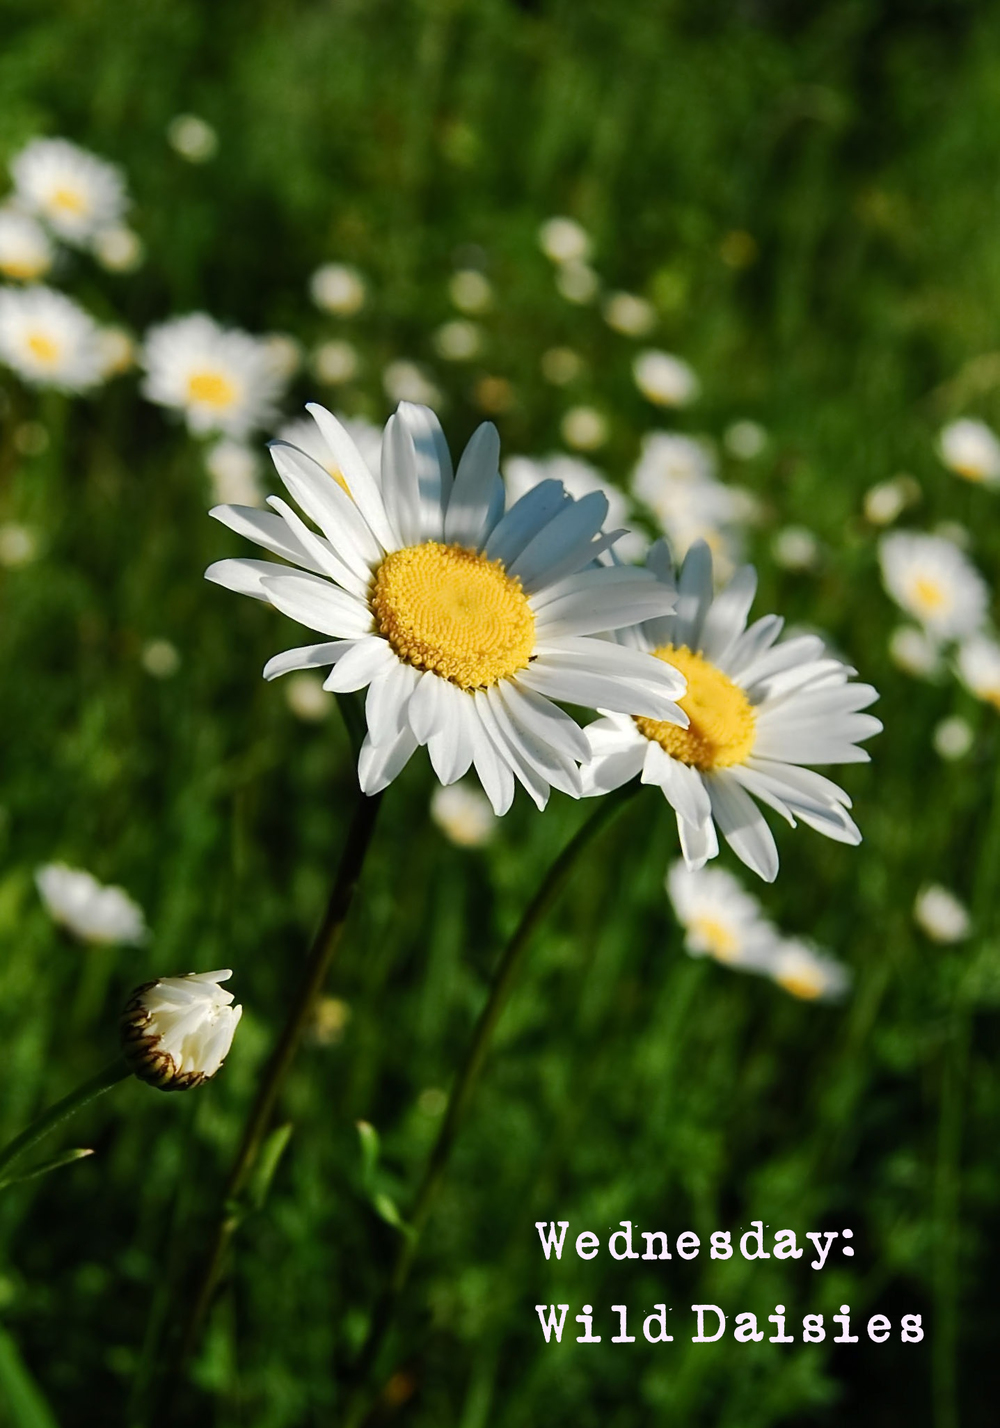 Daisies Purity And Innocence Wolf Whistle Blog